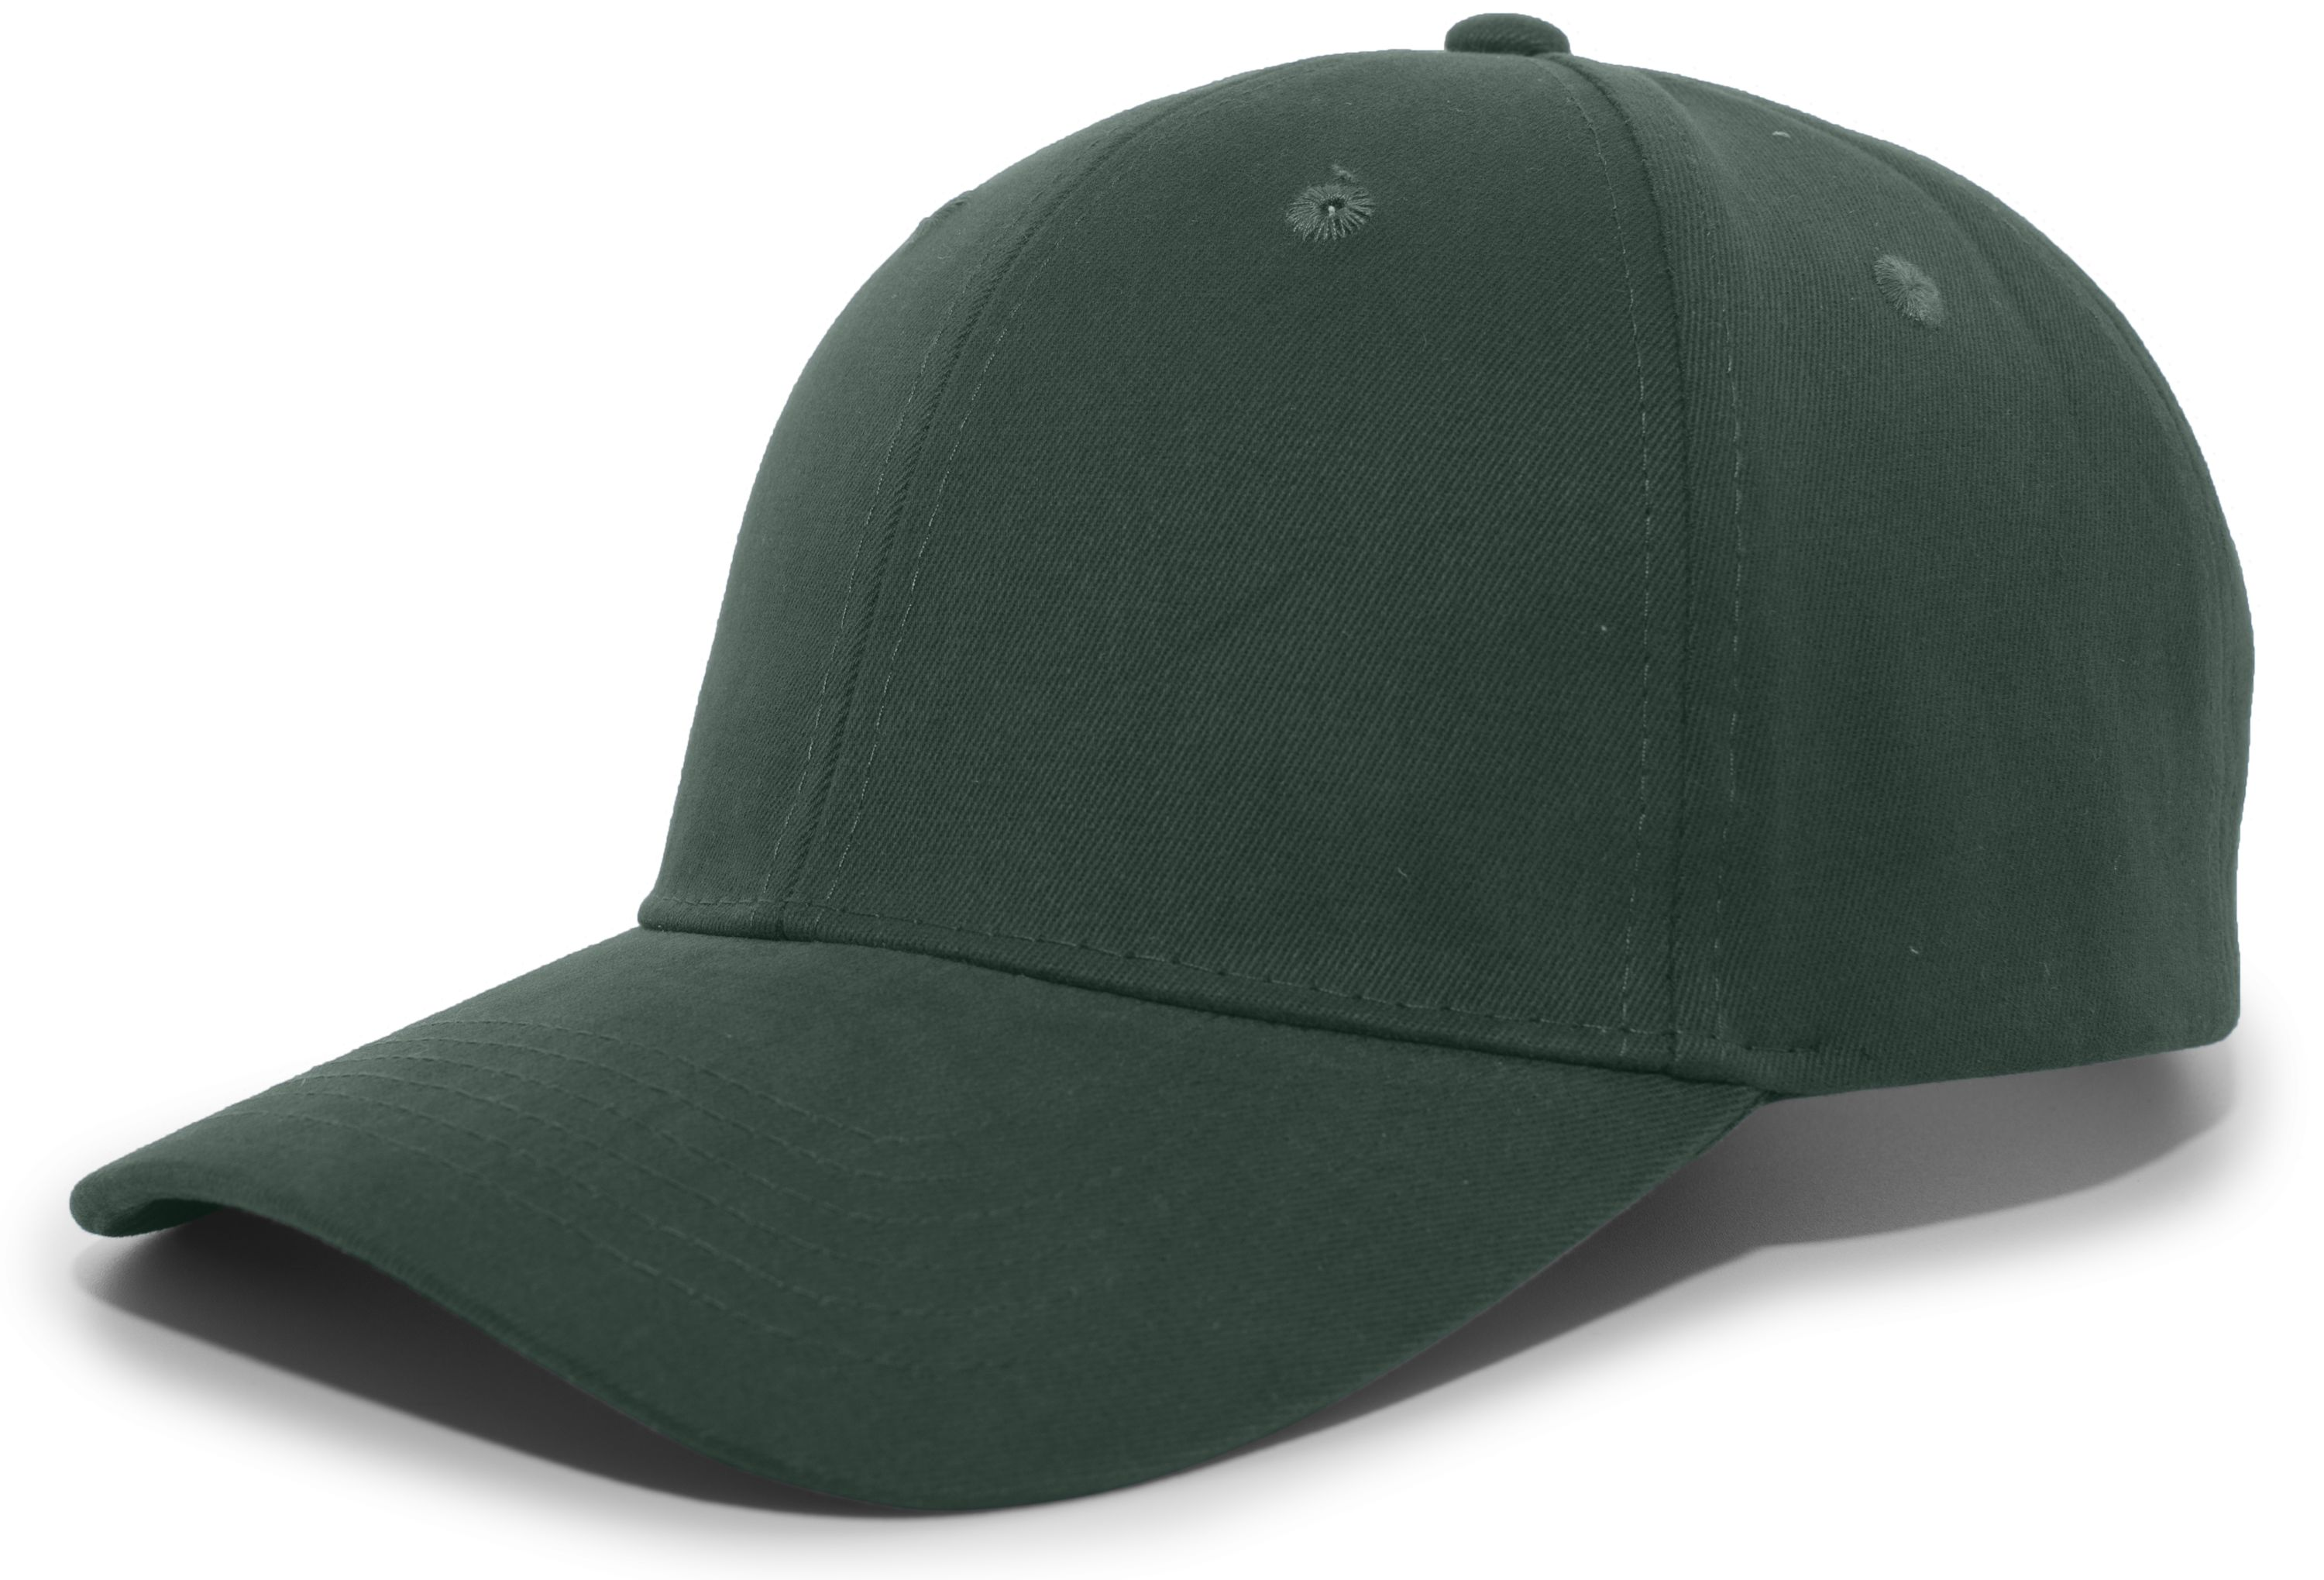 Brushed Cotton Twill Hook-And-Loop Adjustable Cap - HUNTER